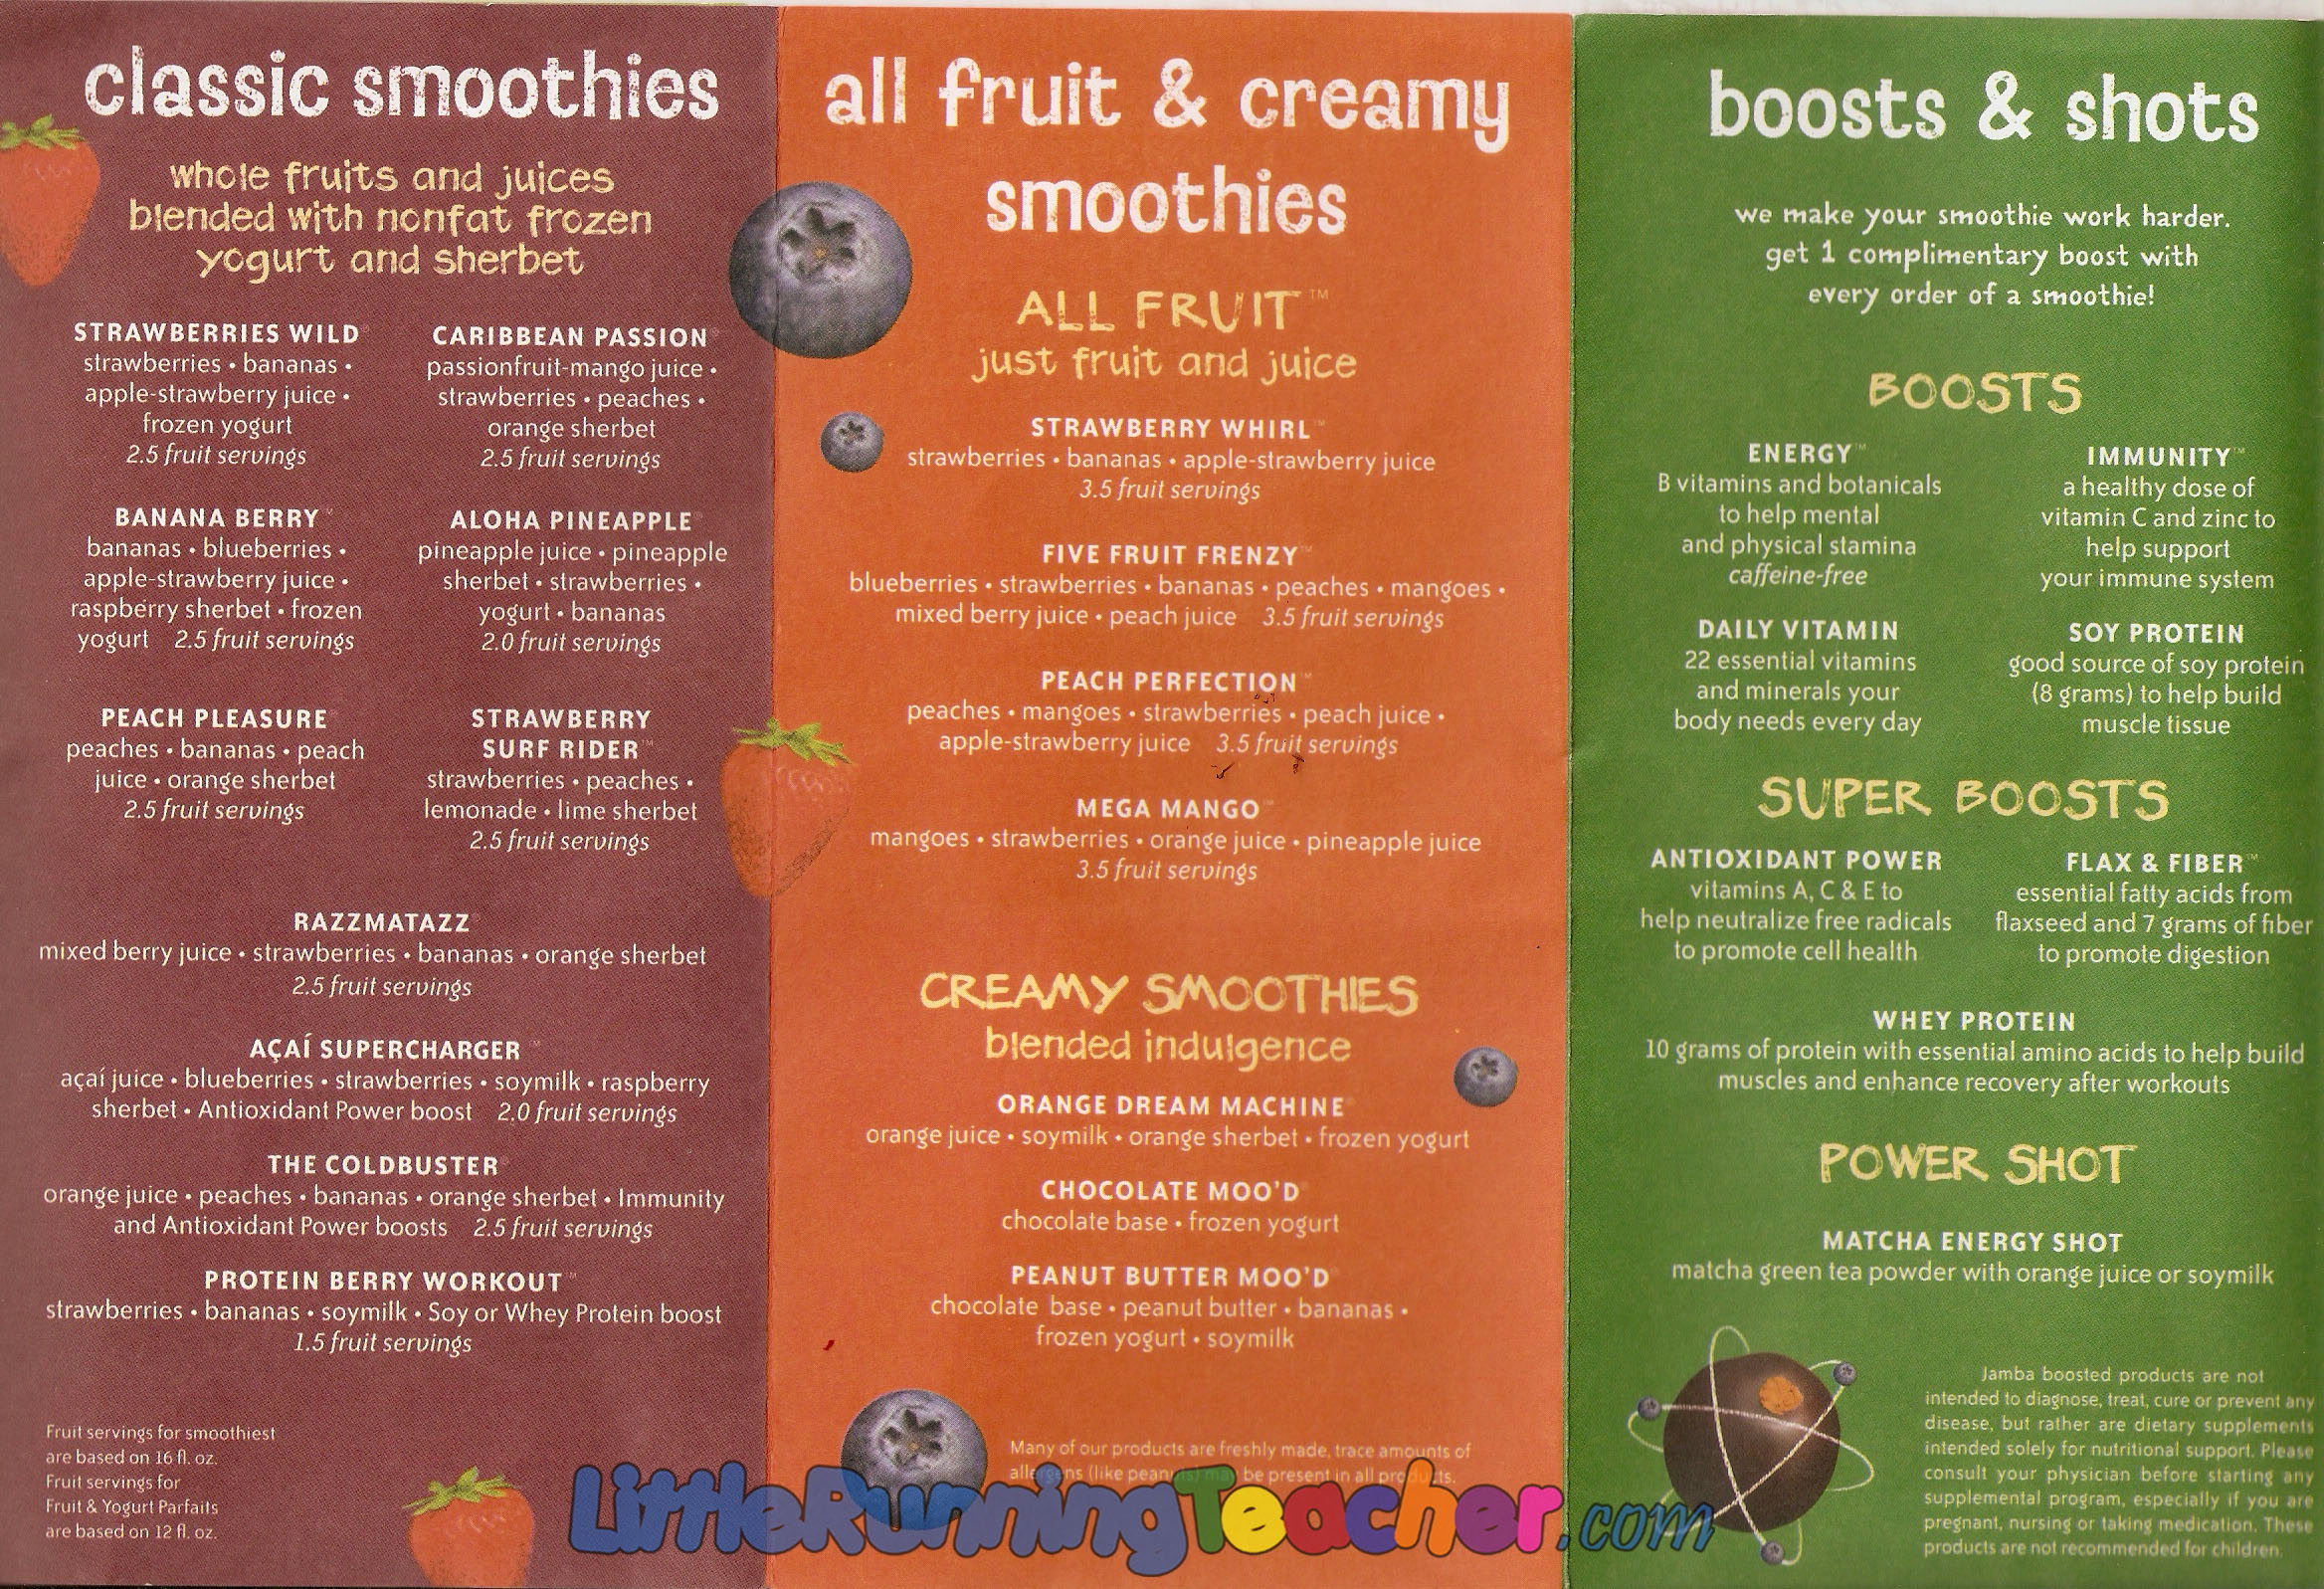 Complete menu prices for all Jamba Juice items - item pricing, meal pricing, etc.